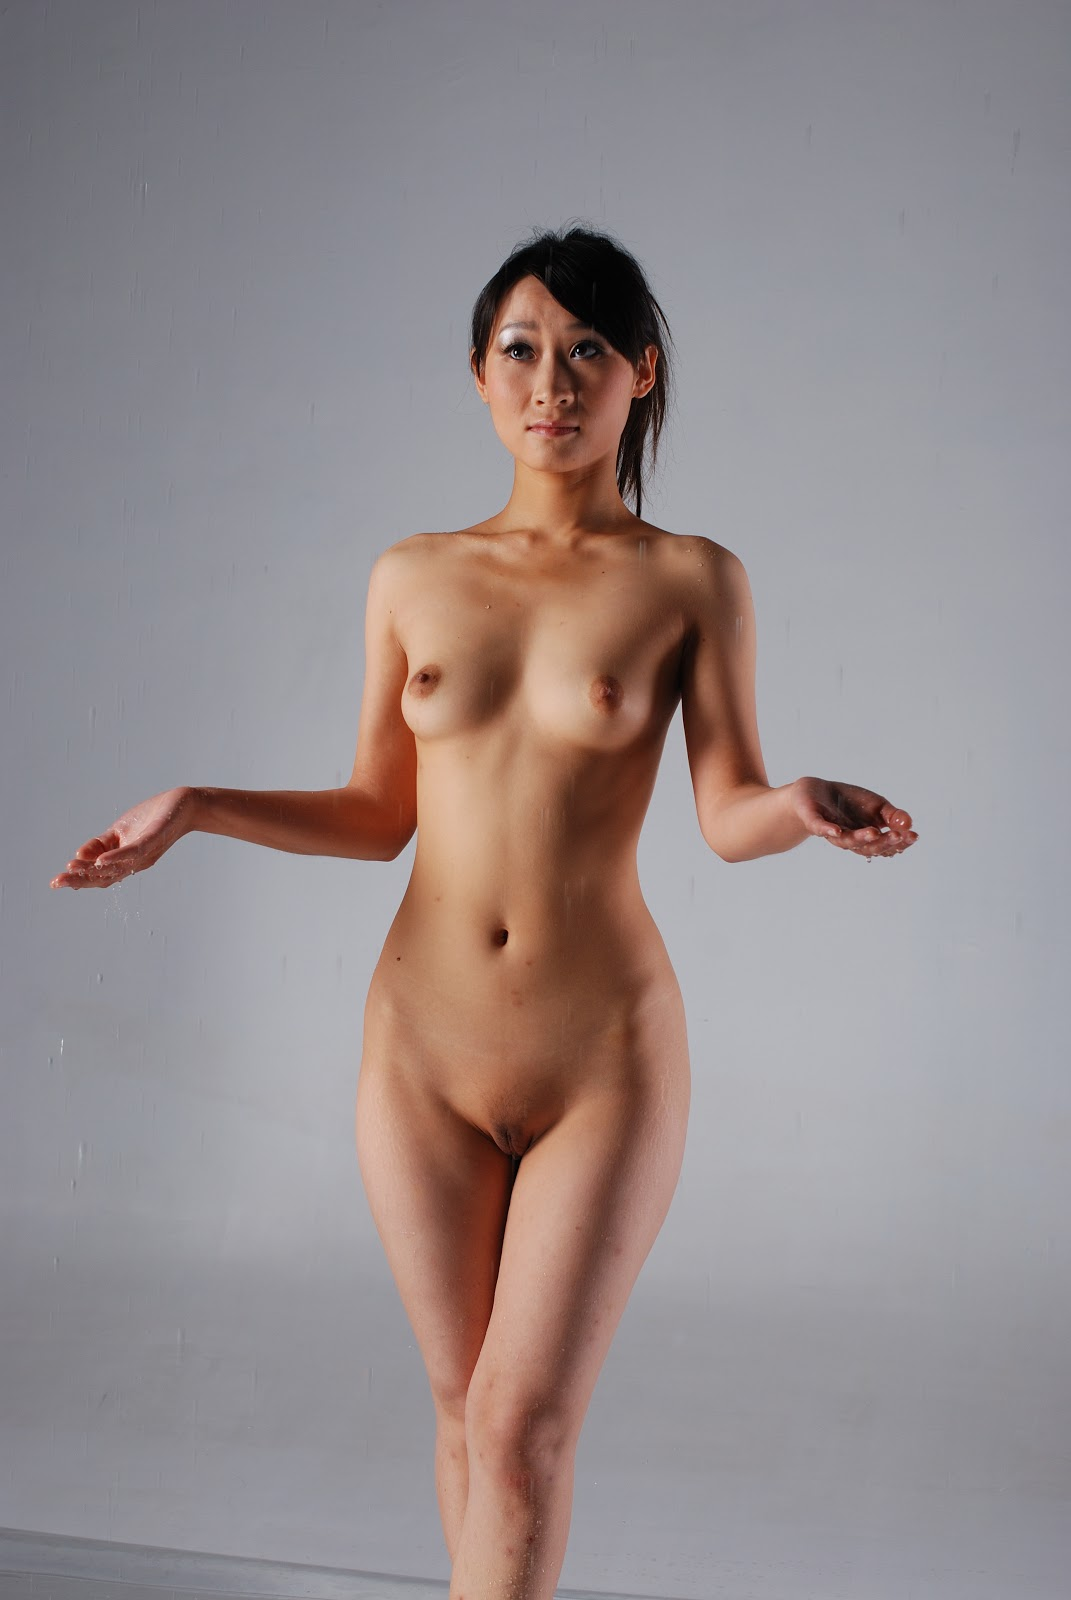 Chinese Nude_Art_Photos_-_236_-_XiaoXian.rar